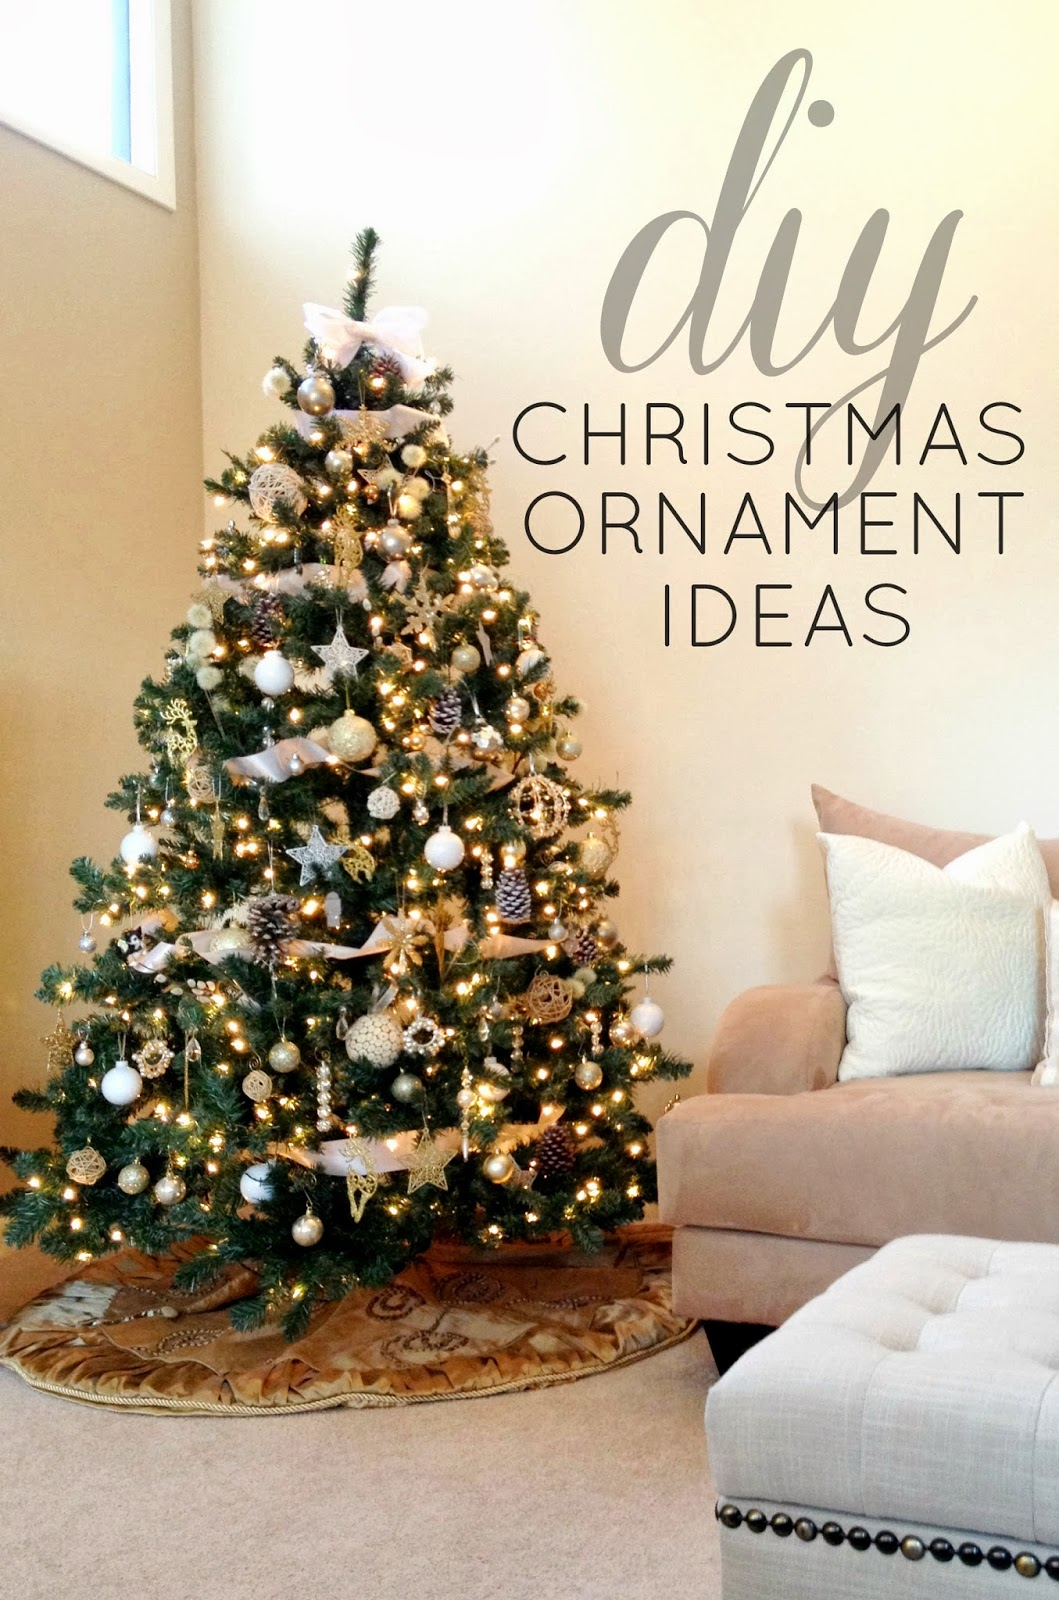 Livelovediy diy christmas ornaments ideas Christmas tree ornaments ideas